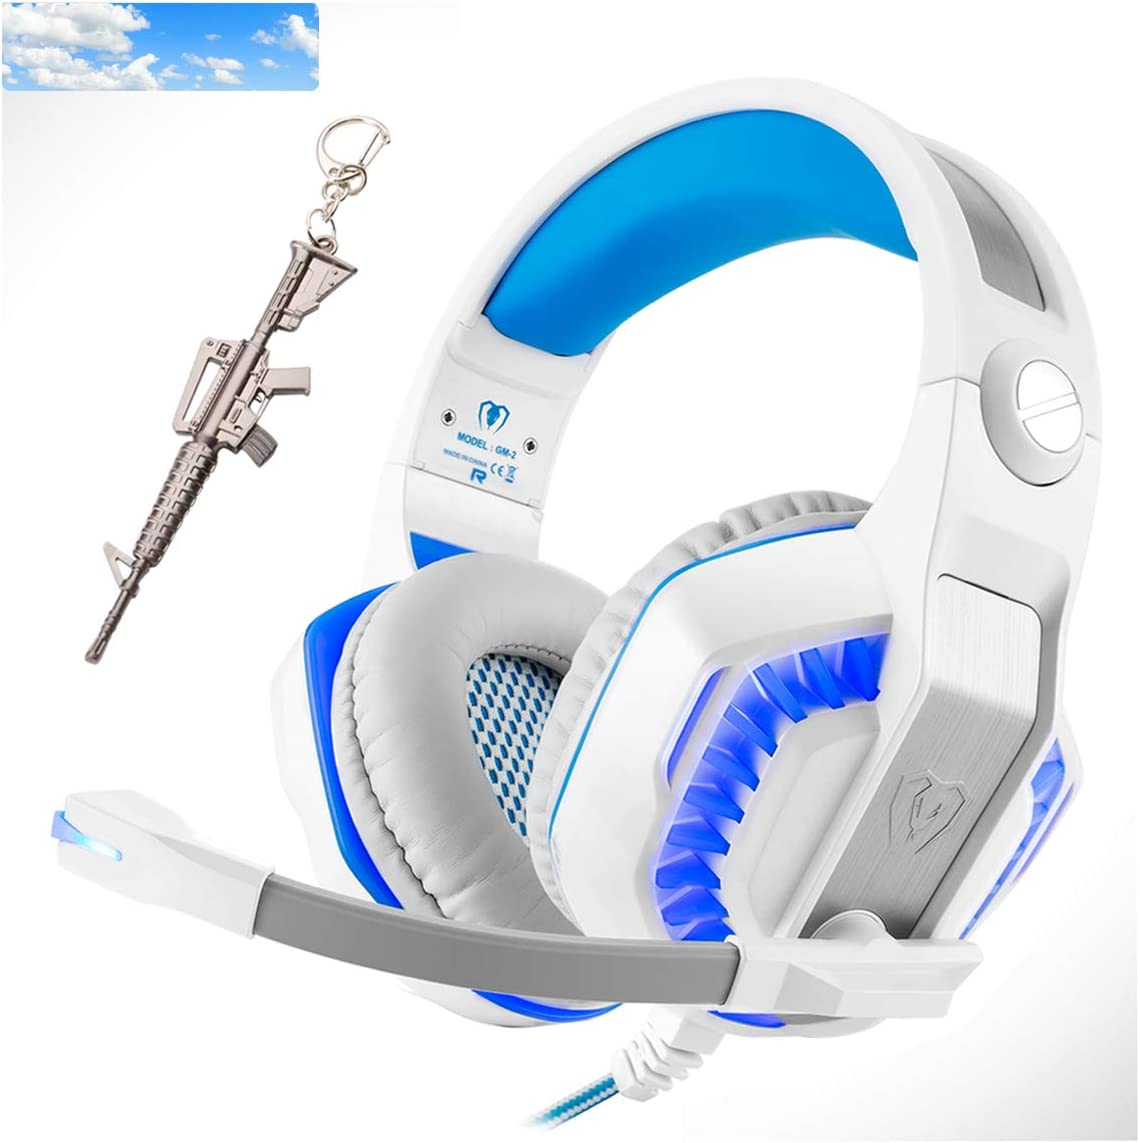 Pro Stereo Gaming Headset for PS4 Xbox One PC, All-Cover Over Ear Headphones Deep Bass Surround Sound with360° Noise Canceling Mic & LED Light for Nintendo Switch Mac Laptop (Sky Blue)